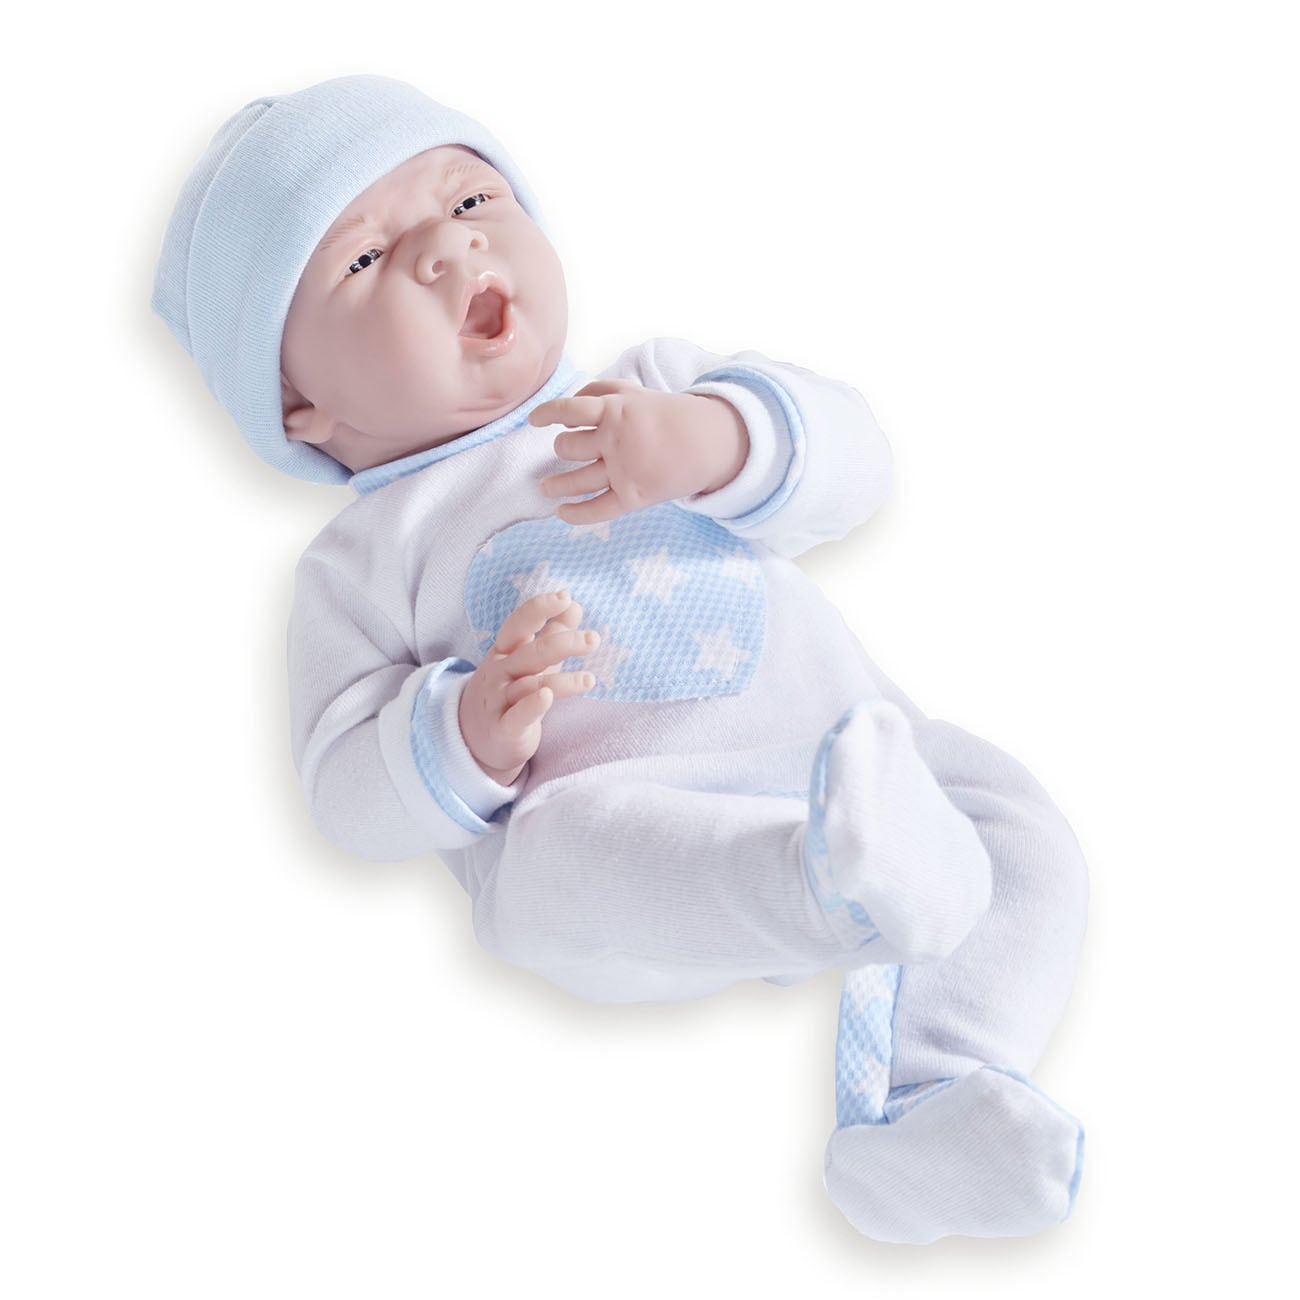 Vinyl and Fabric Realistic Twin Dolls with Cuddly Pajamas...